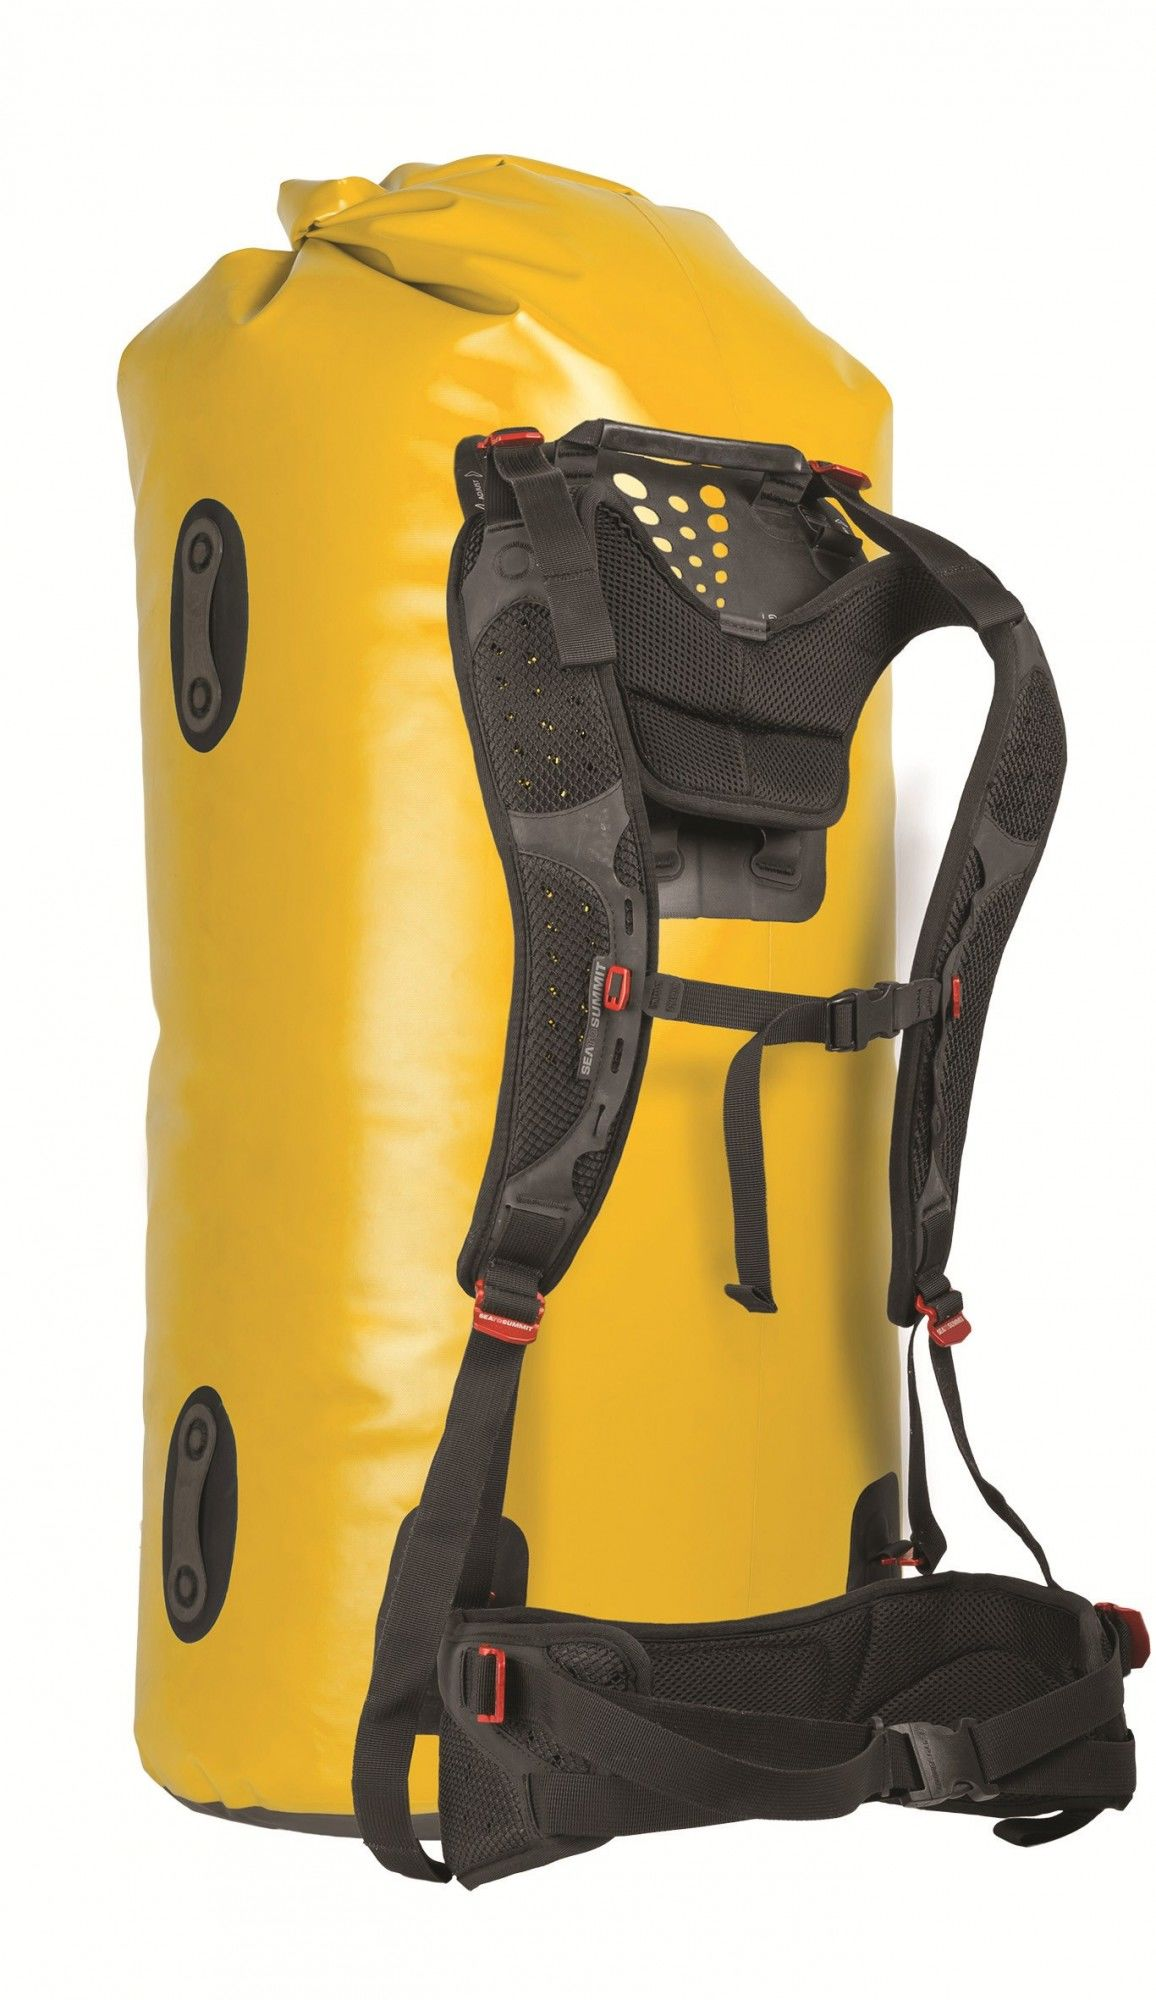 Sea to Summit Hydraulic Drypack 120l |  Packsack